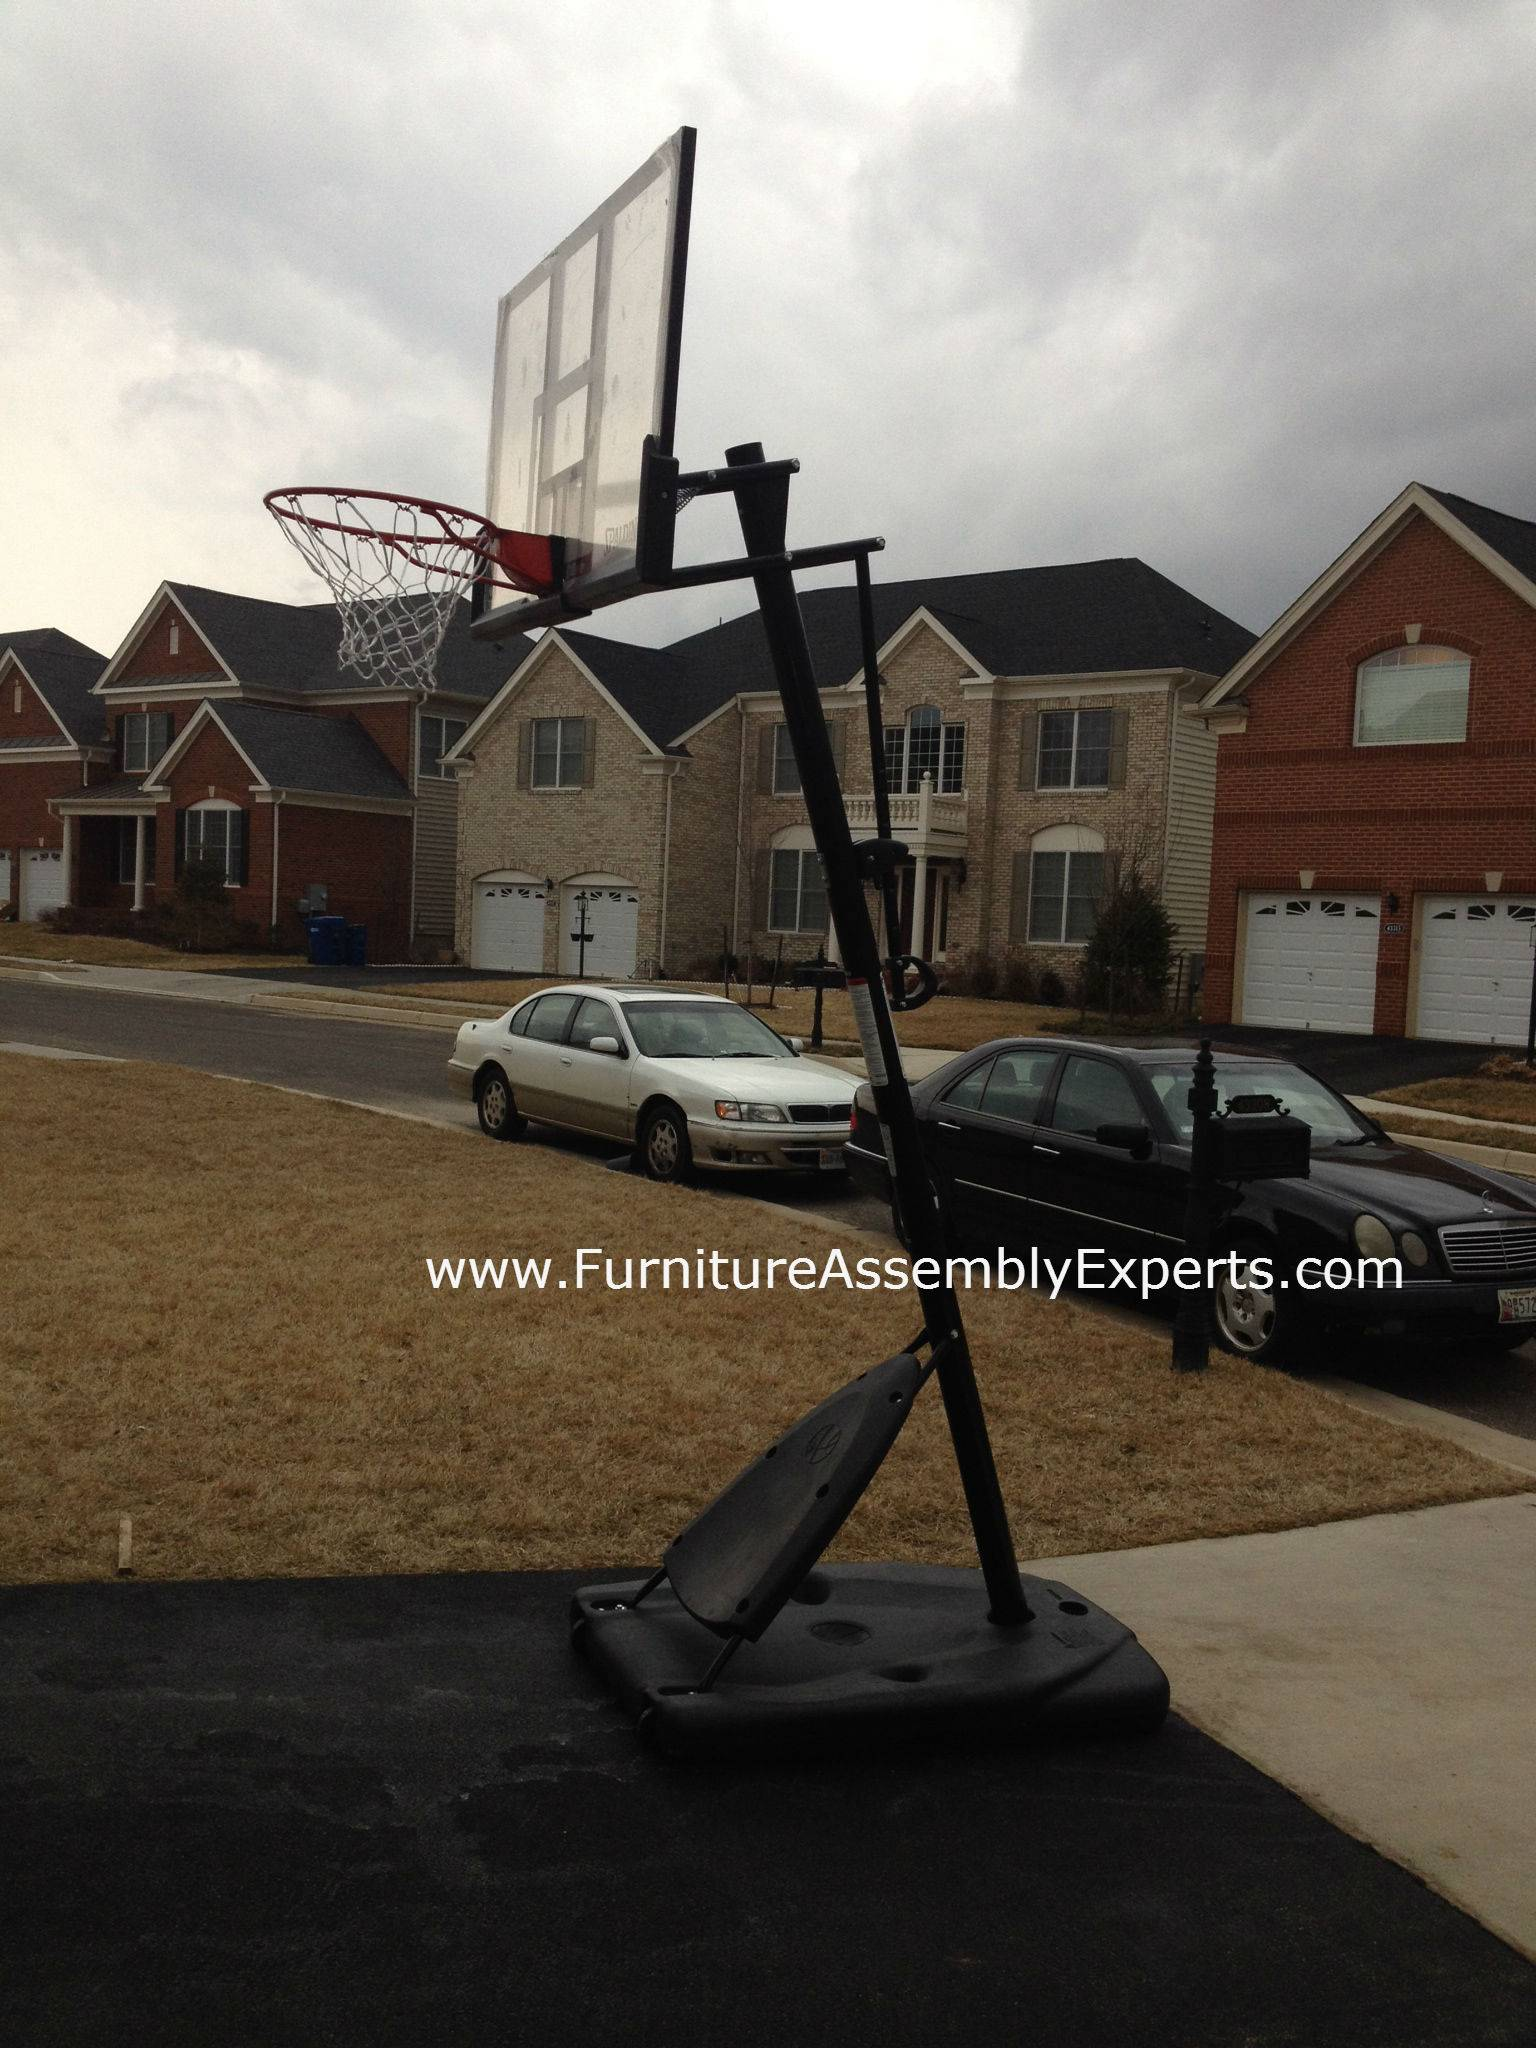 portable basketball hoop assembly service in dundalk MD